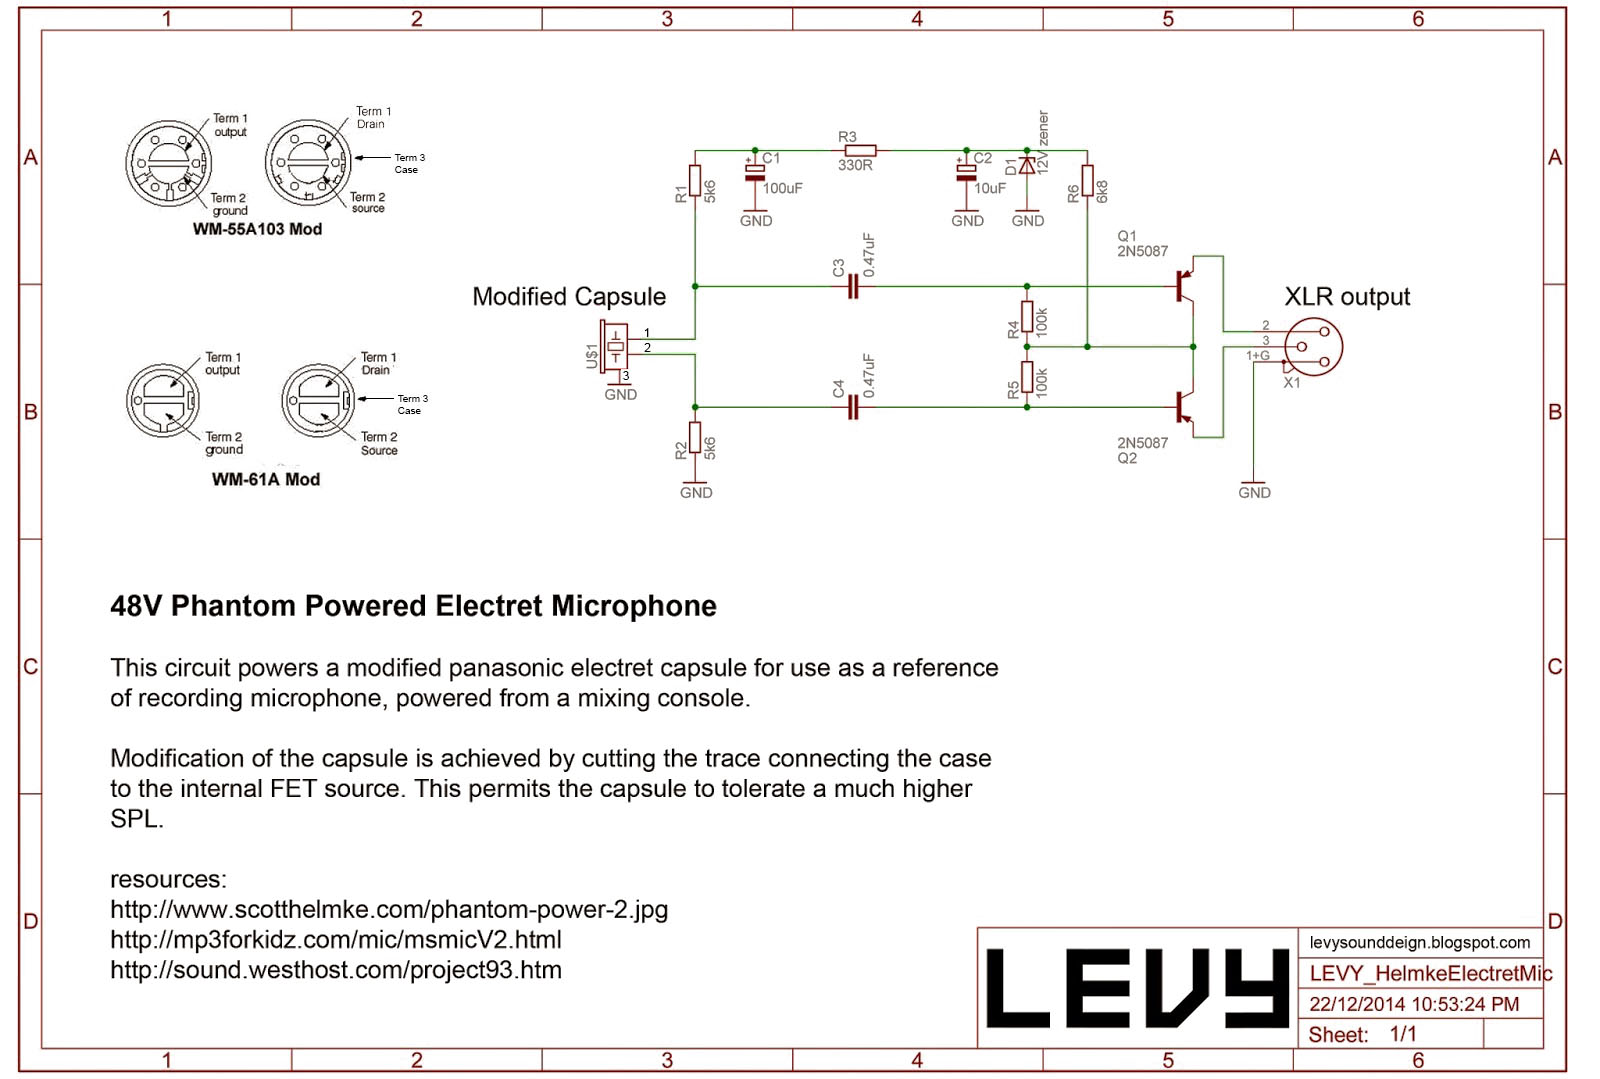 Condenser Microphone Wiring Diagram Library Reviews Online Shopping On Electret Three Wires Are Then Connected To The Result Is A Greater Tolerance For